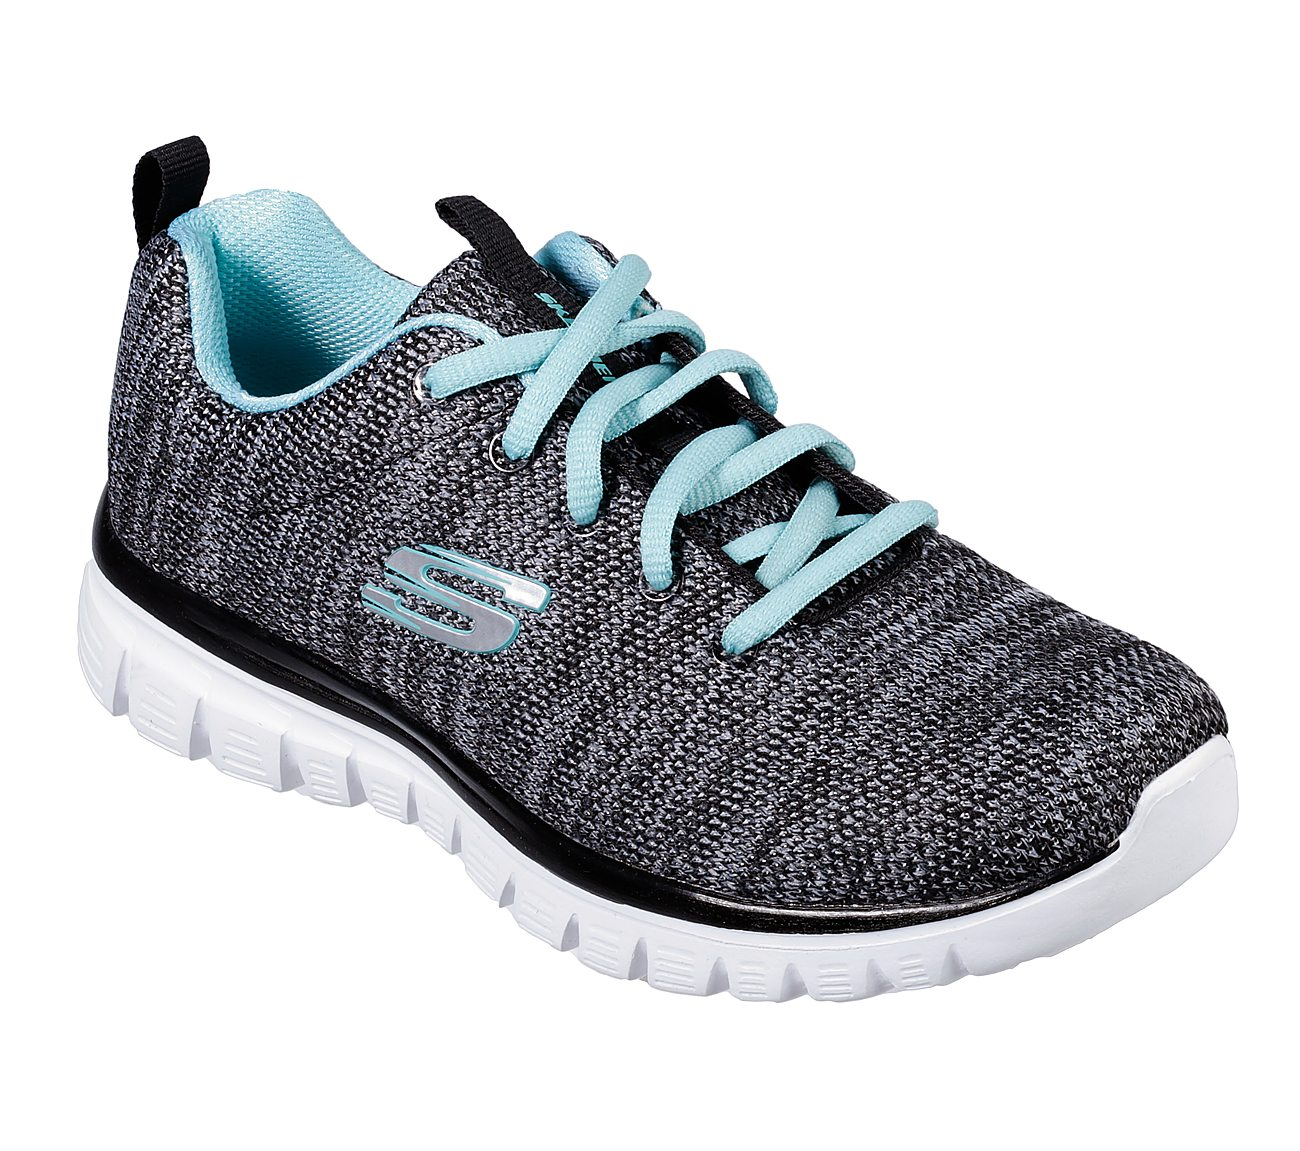 Buy SKECHERS Graceful - Twisted Fortune